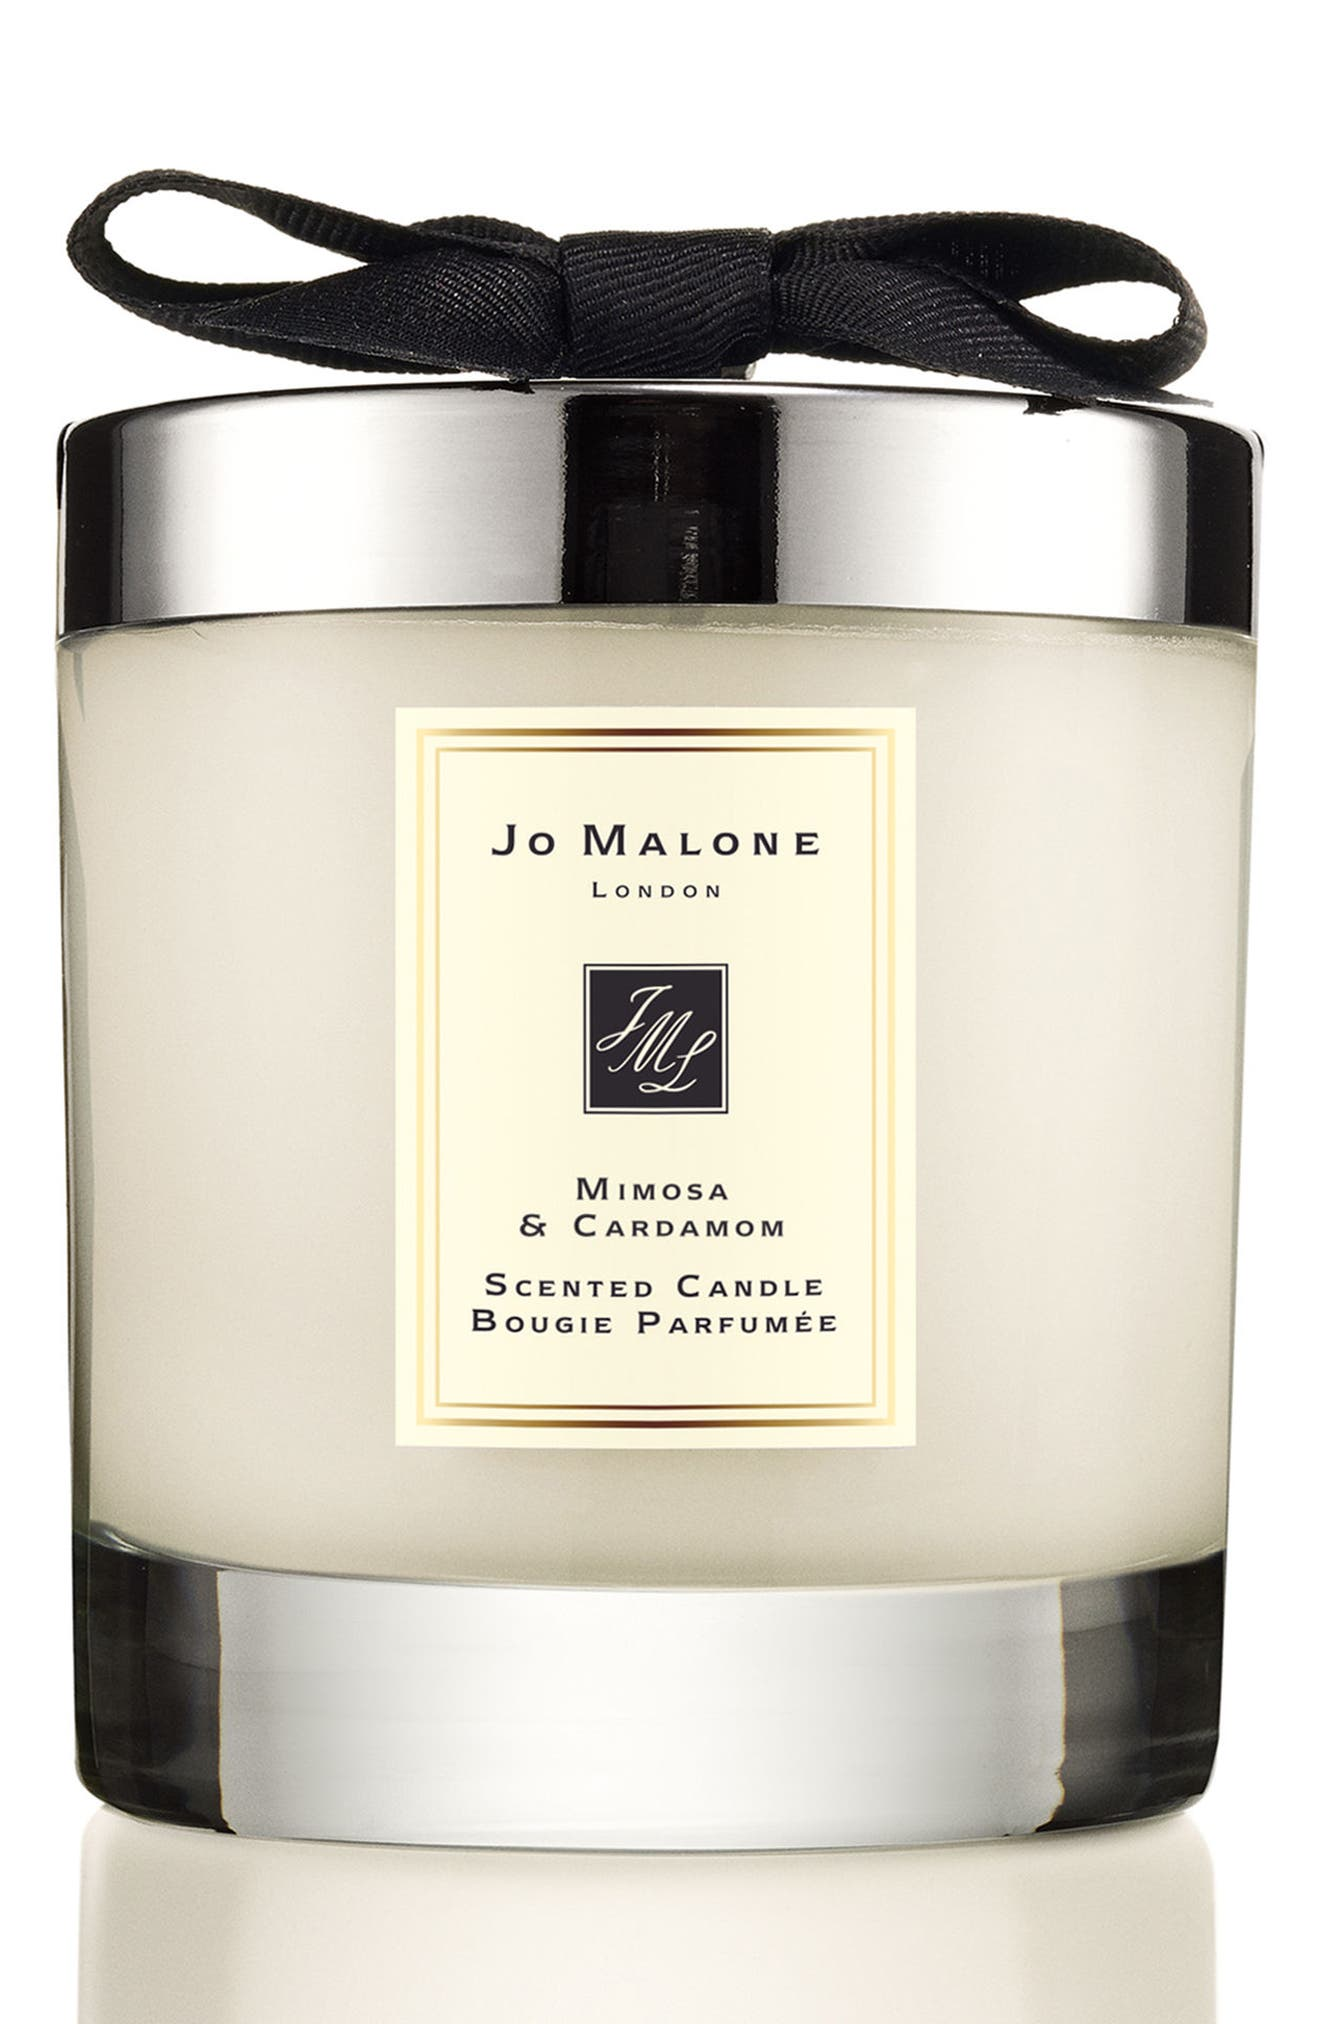 Jo Malone™ Mimosa & Cardamom Scented Candle